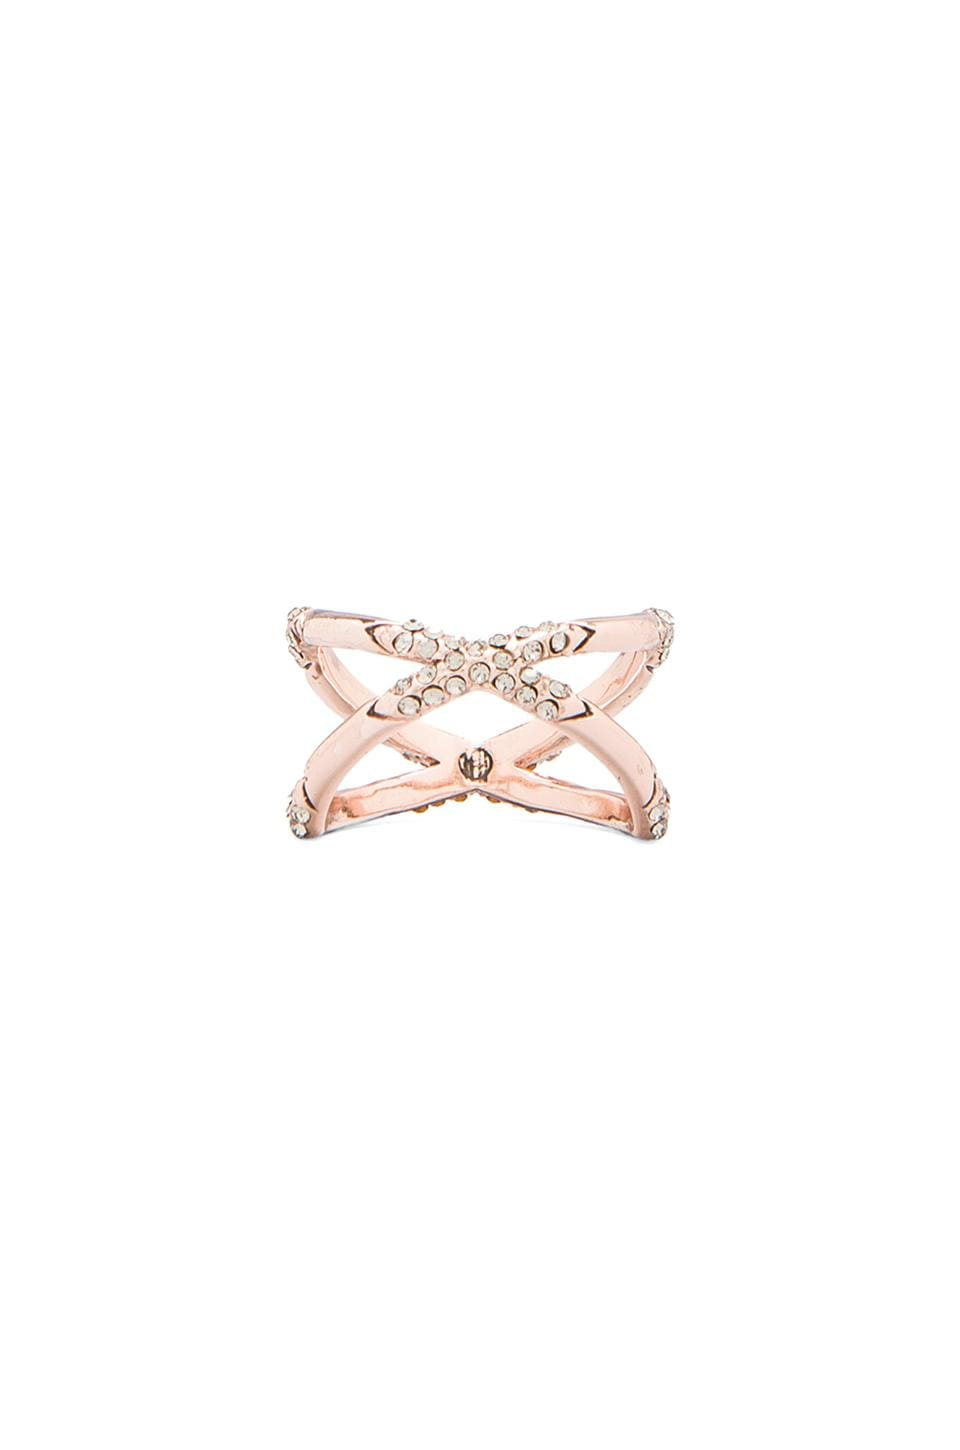 House of Harlow 1960 House of Harlow Sound Waves Ring in Rose Gold